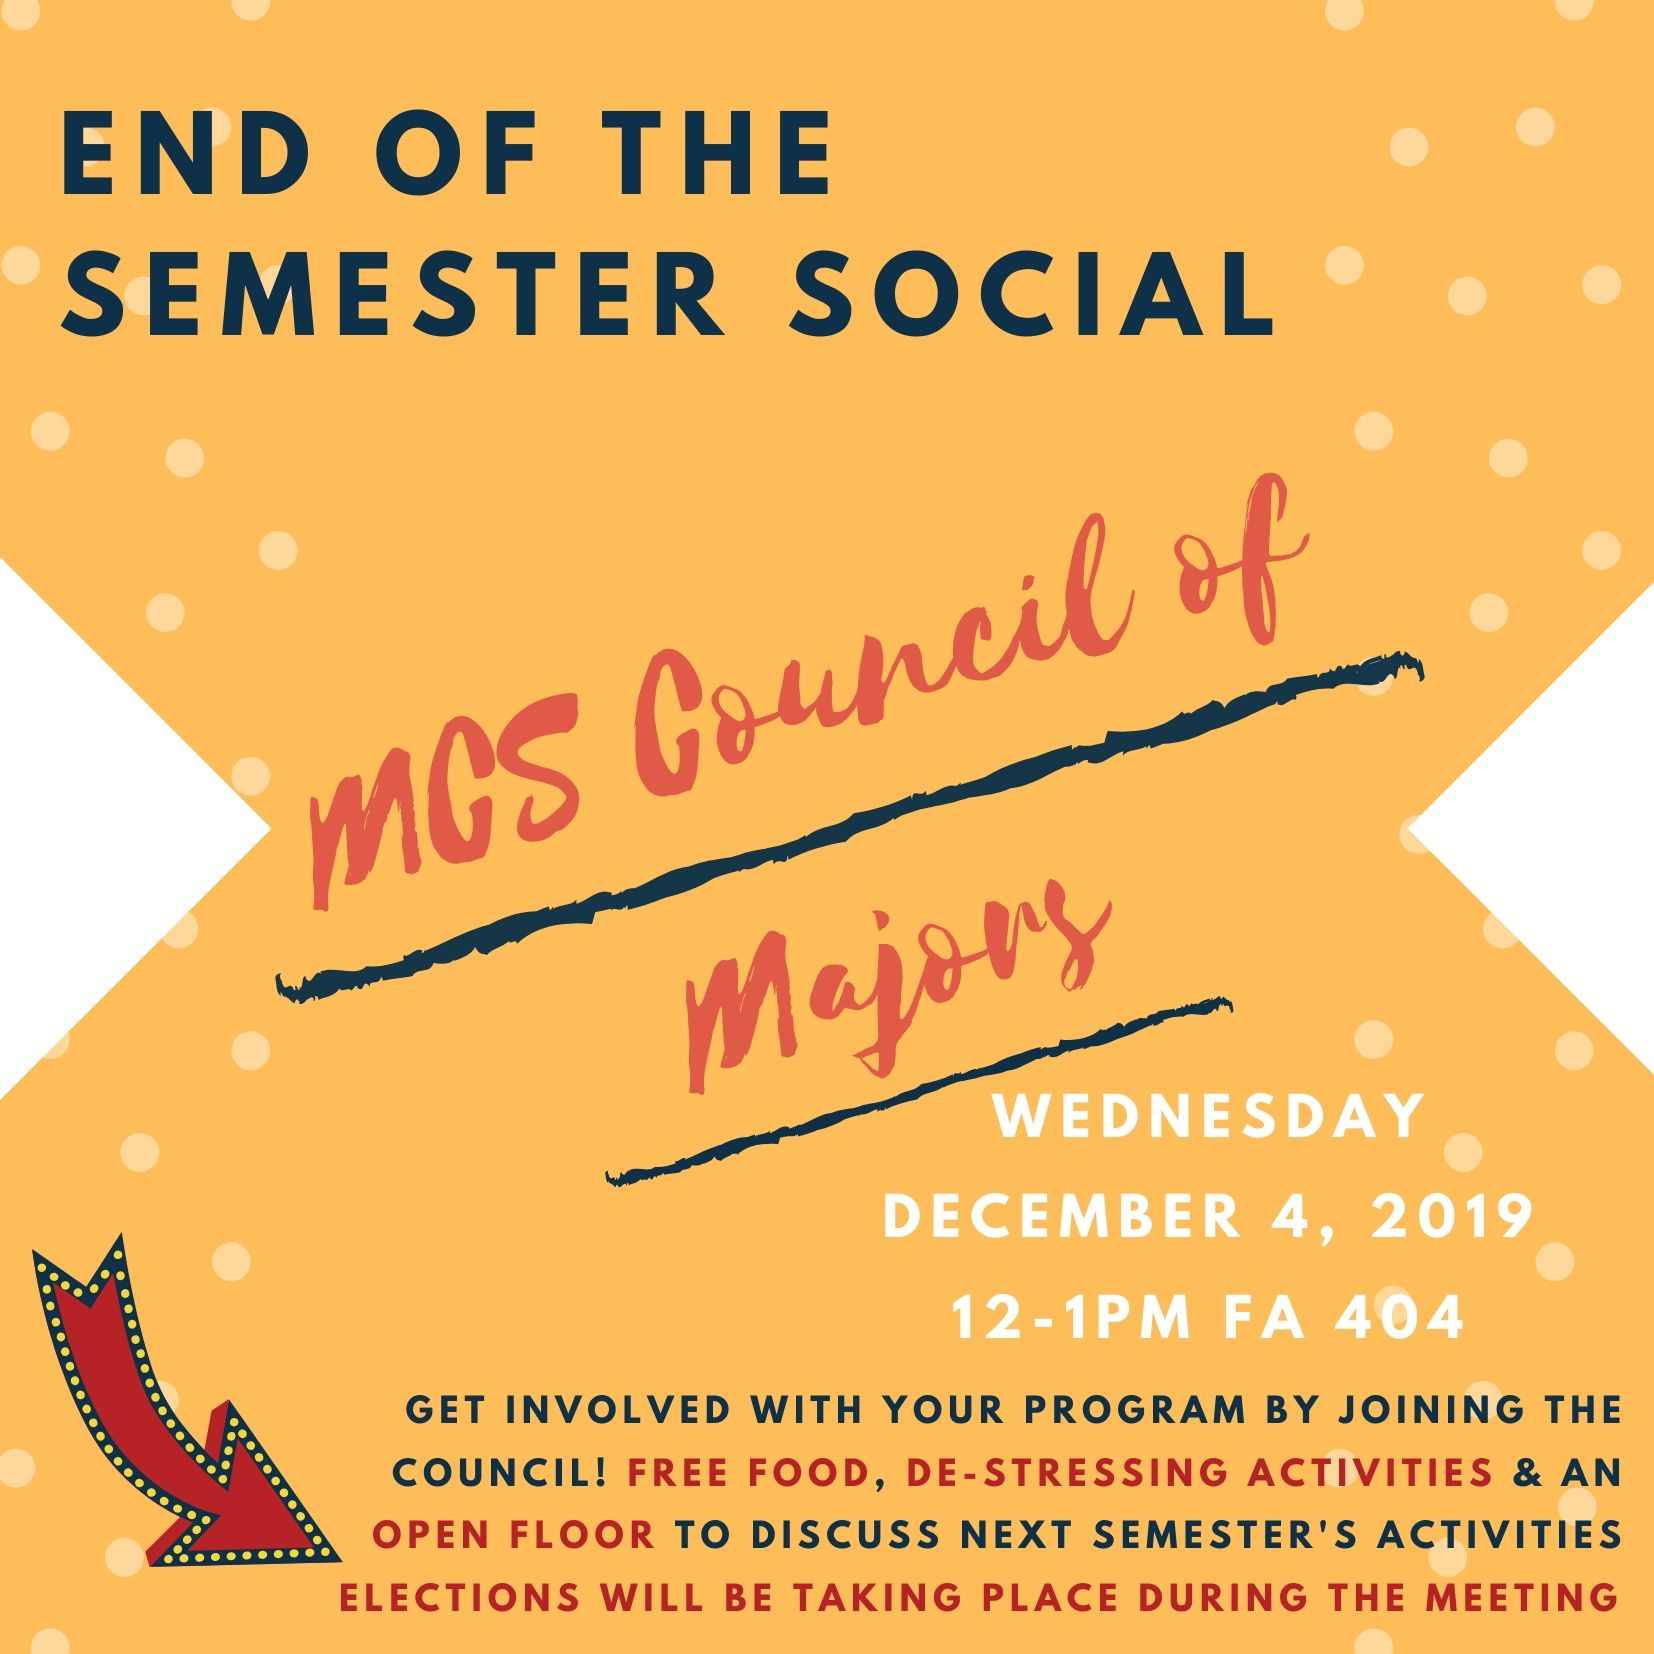 End of the semester social!